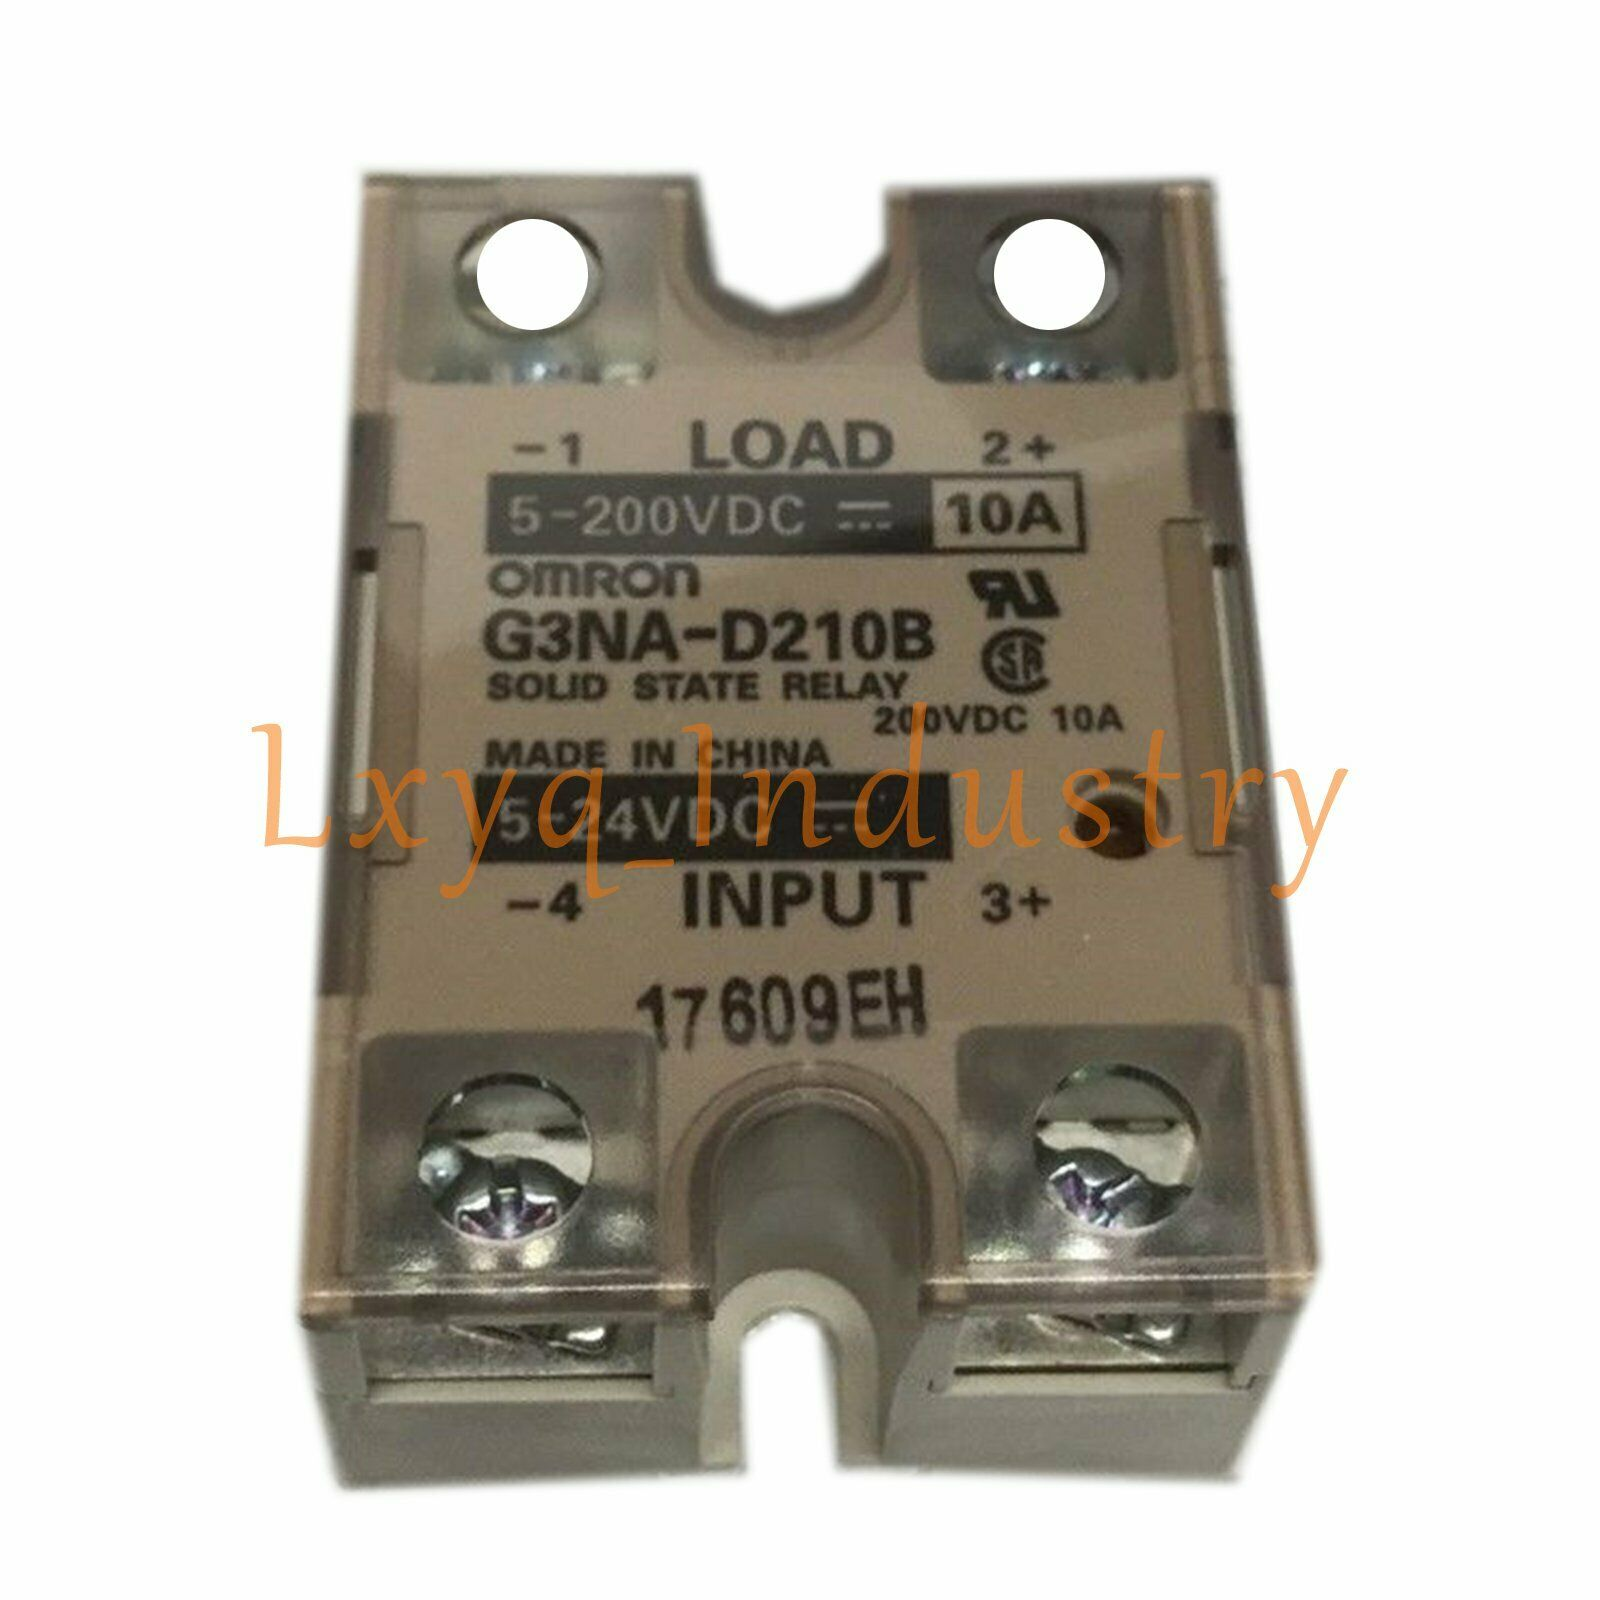 Omron G3NA-D210B Solid State Relay 5-200V DC Heater Temperature Relay 10 Amp,New